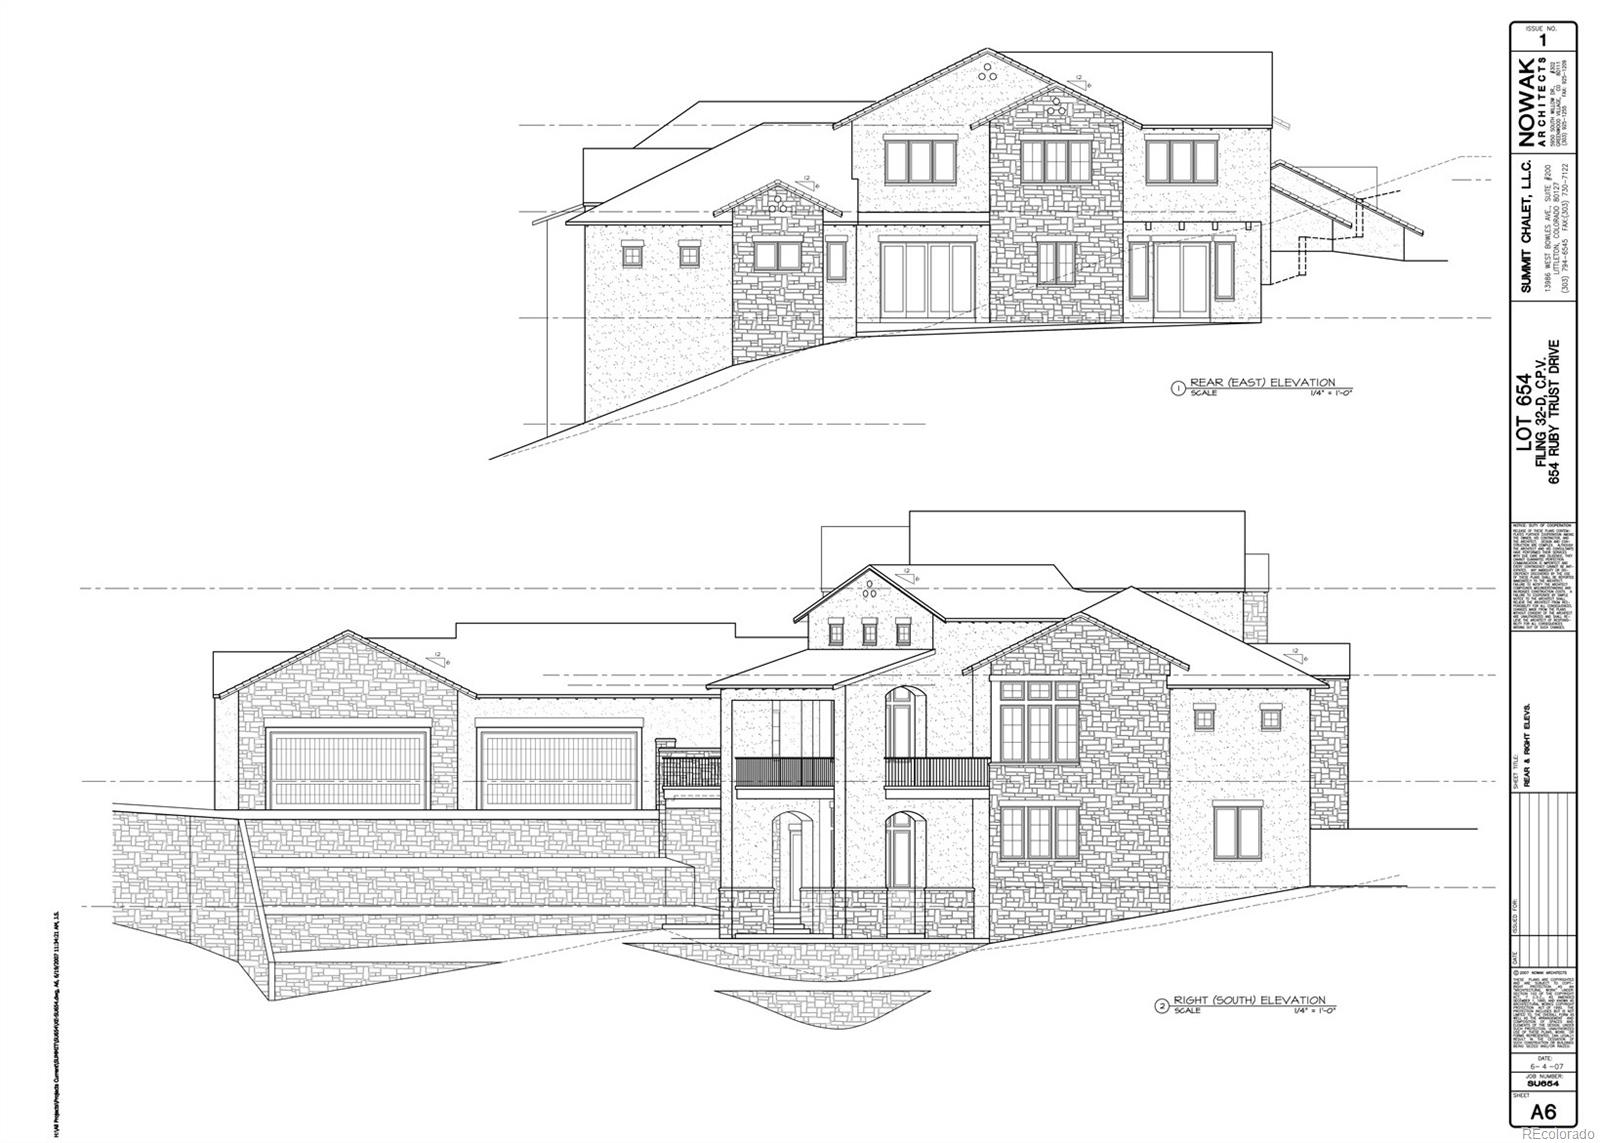 Rear and Right Elevations